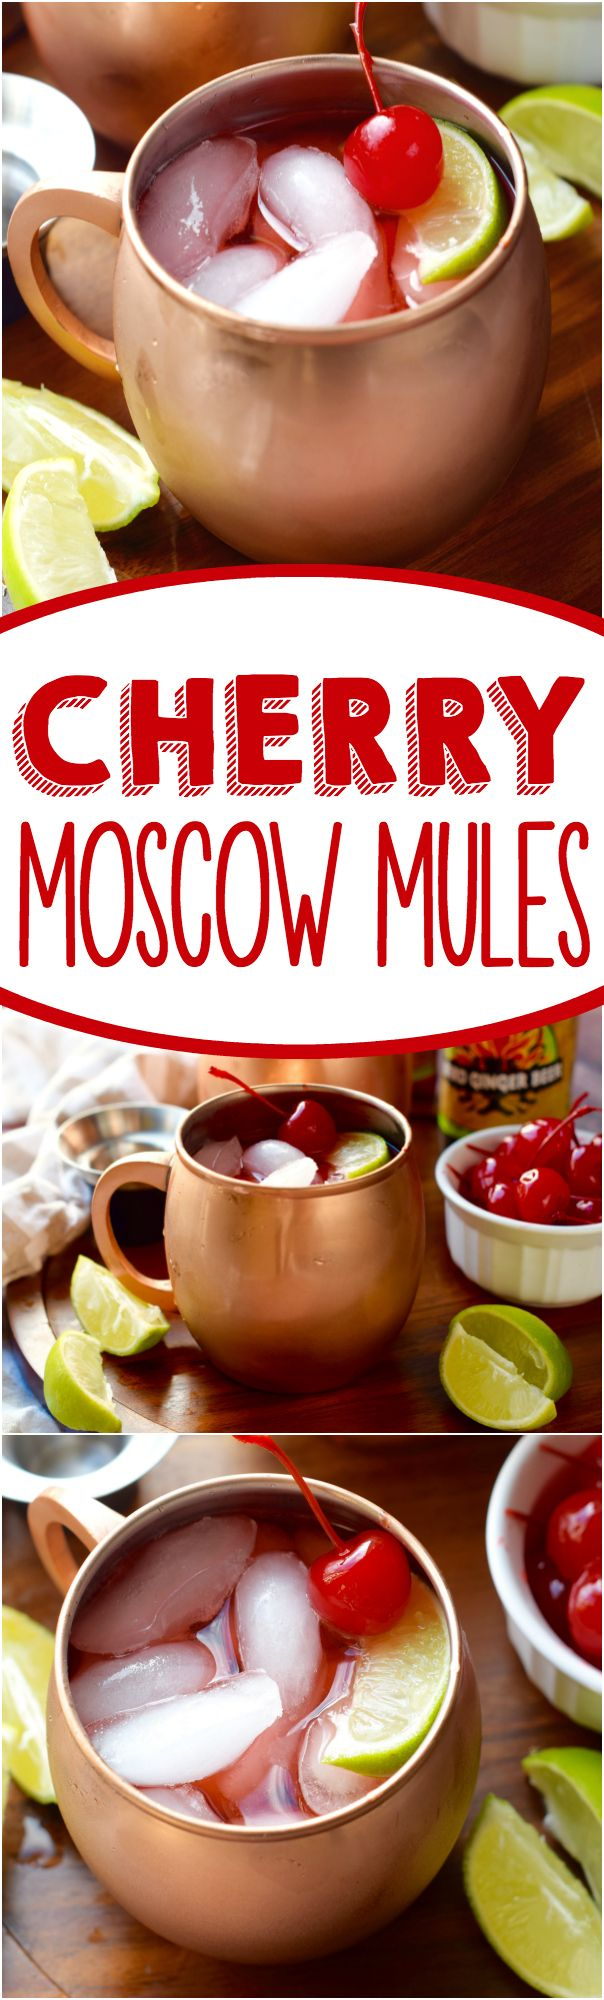 These Cherry Moscow Mules are a delicious twist on an amazing cocktail! Make a pitcher for your next get together!: